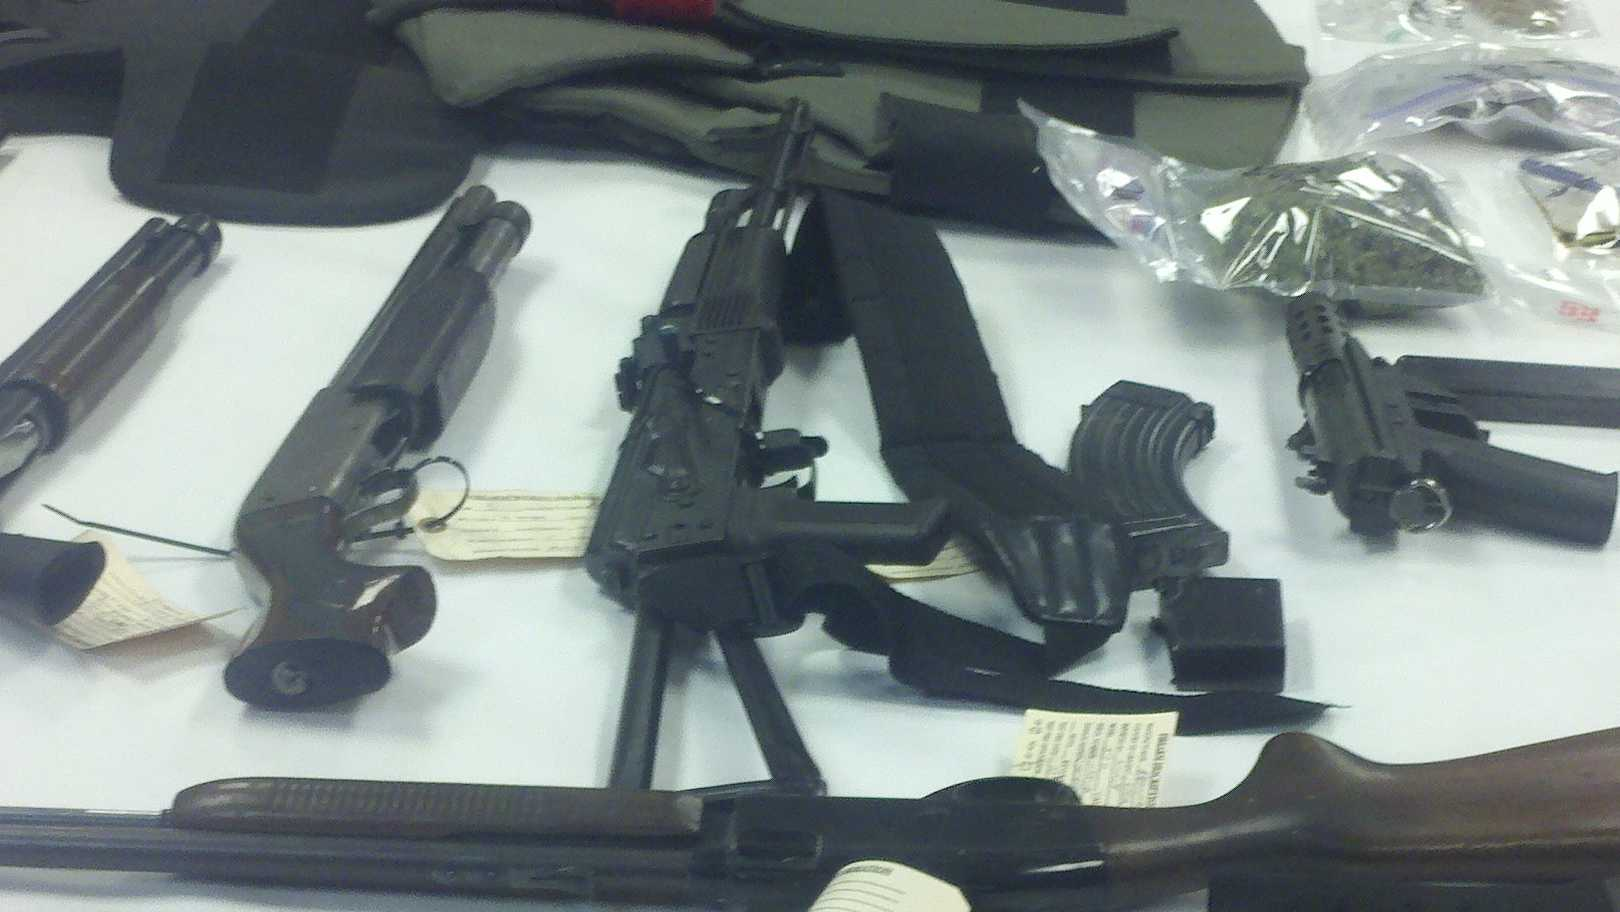 Police officers display some of the weapons they uncovered in the raids.